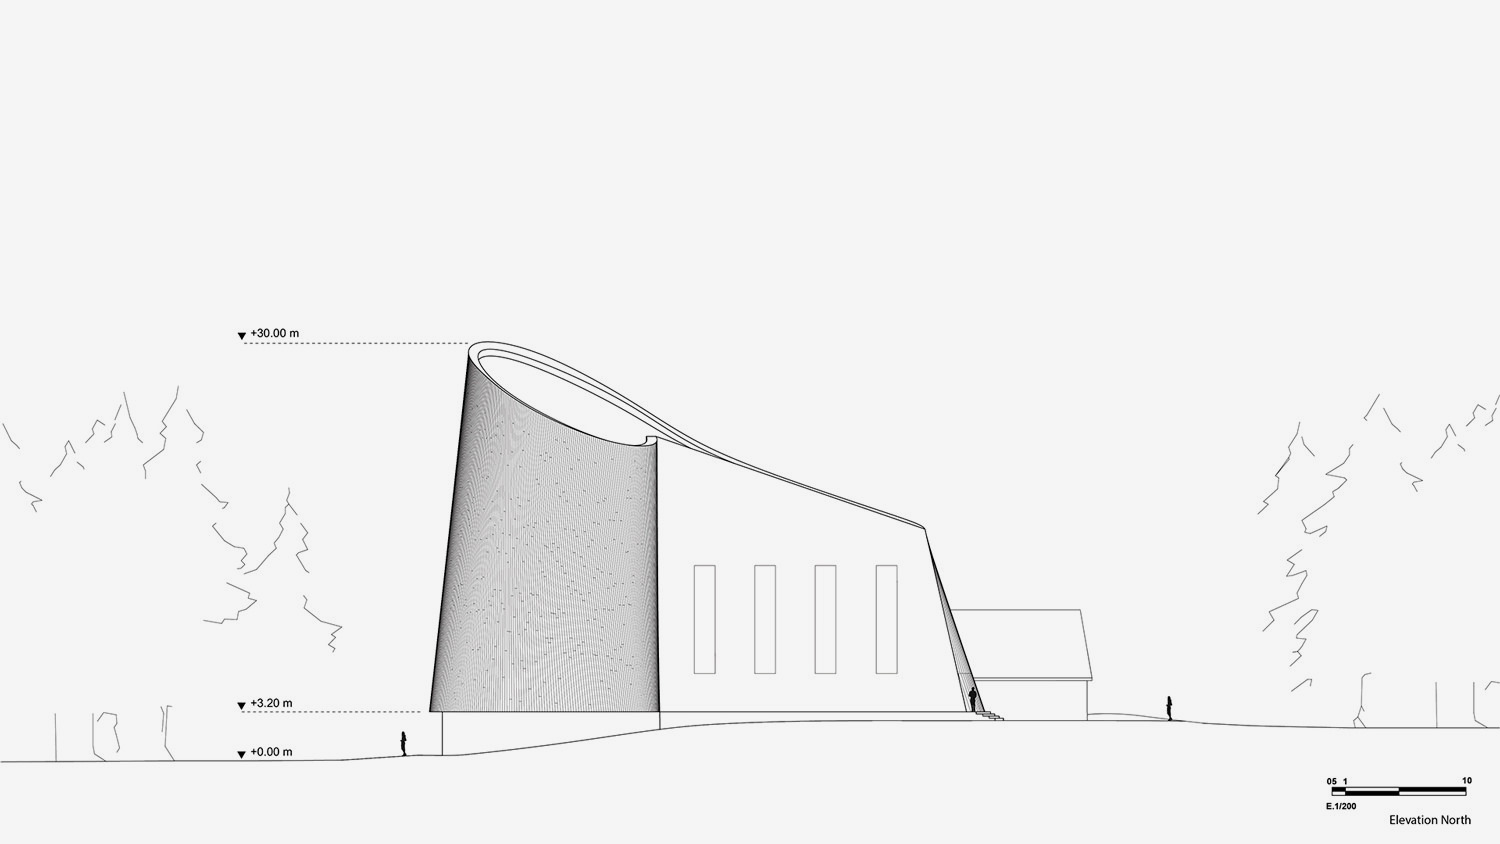 new-valer-church-elevation3-joerg-hugo.jpg